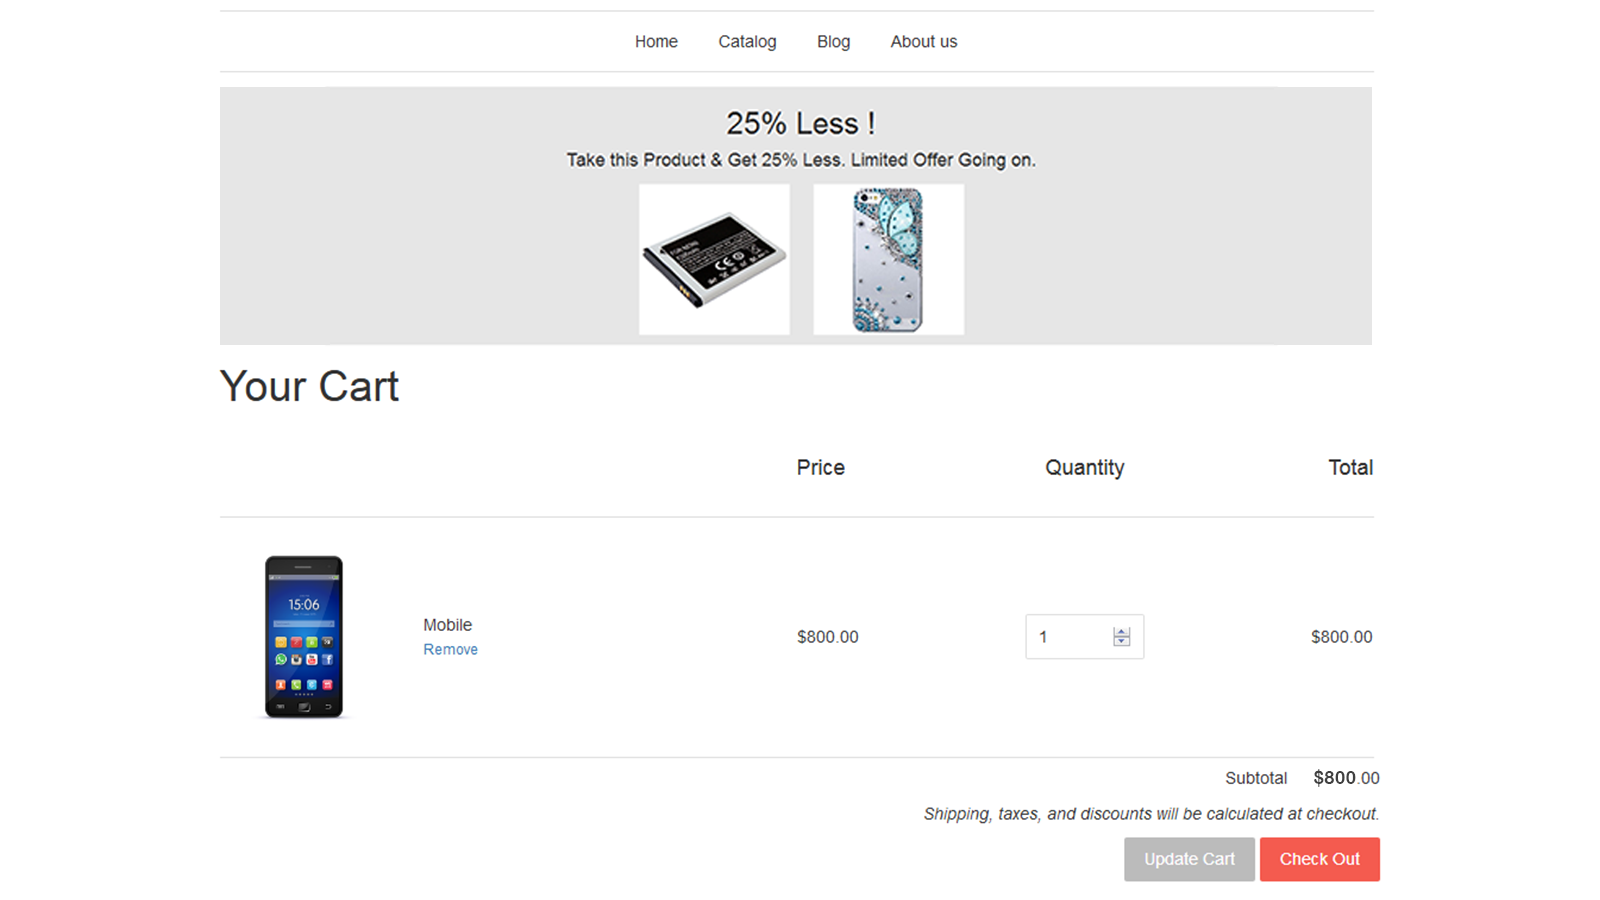 Show upsell offer in the cart